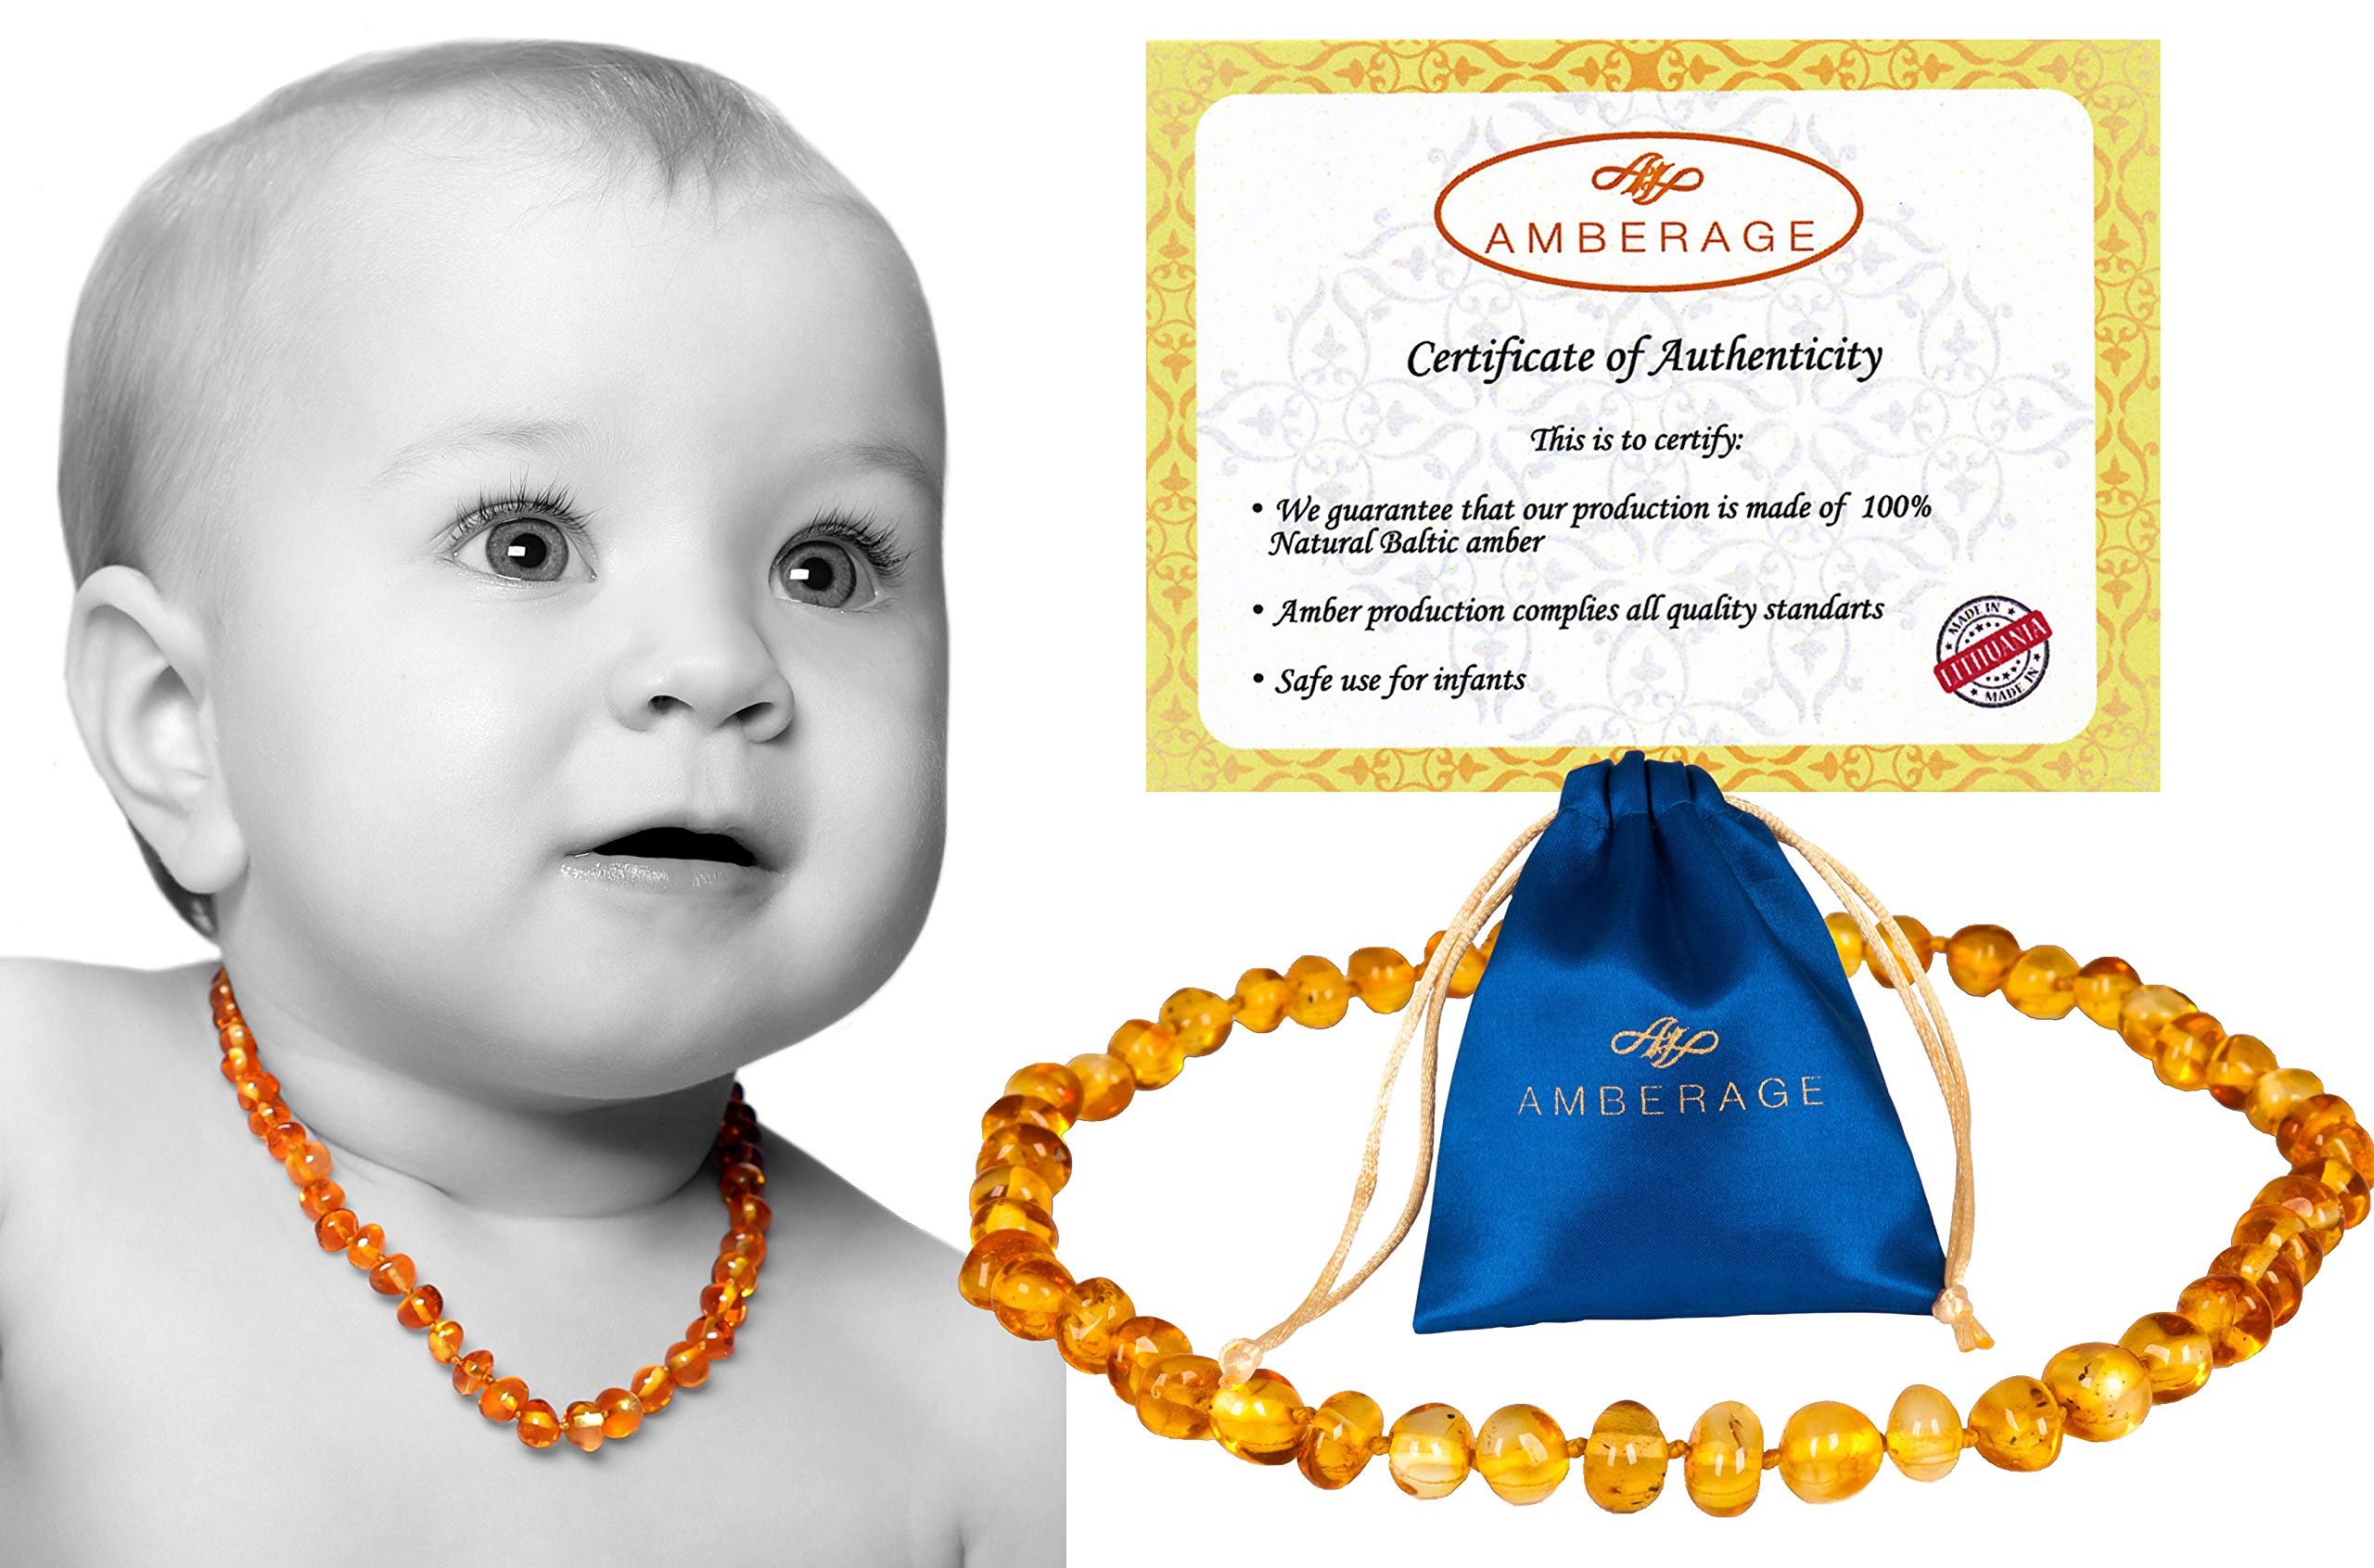 AMBERAGE Baltic Amber Baby Teething Necklaces (Unisex) Anti Flammatory, Drooling & Teething Pain Reduce Properties, Certificated Baroque Beads ( Honey ),Quality Guaranteed by Amberage